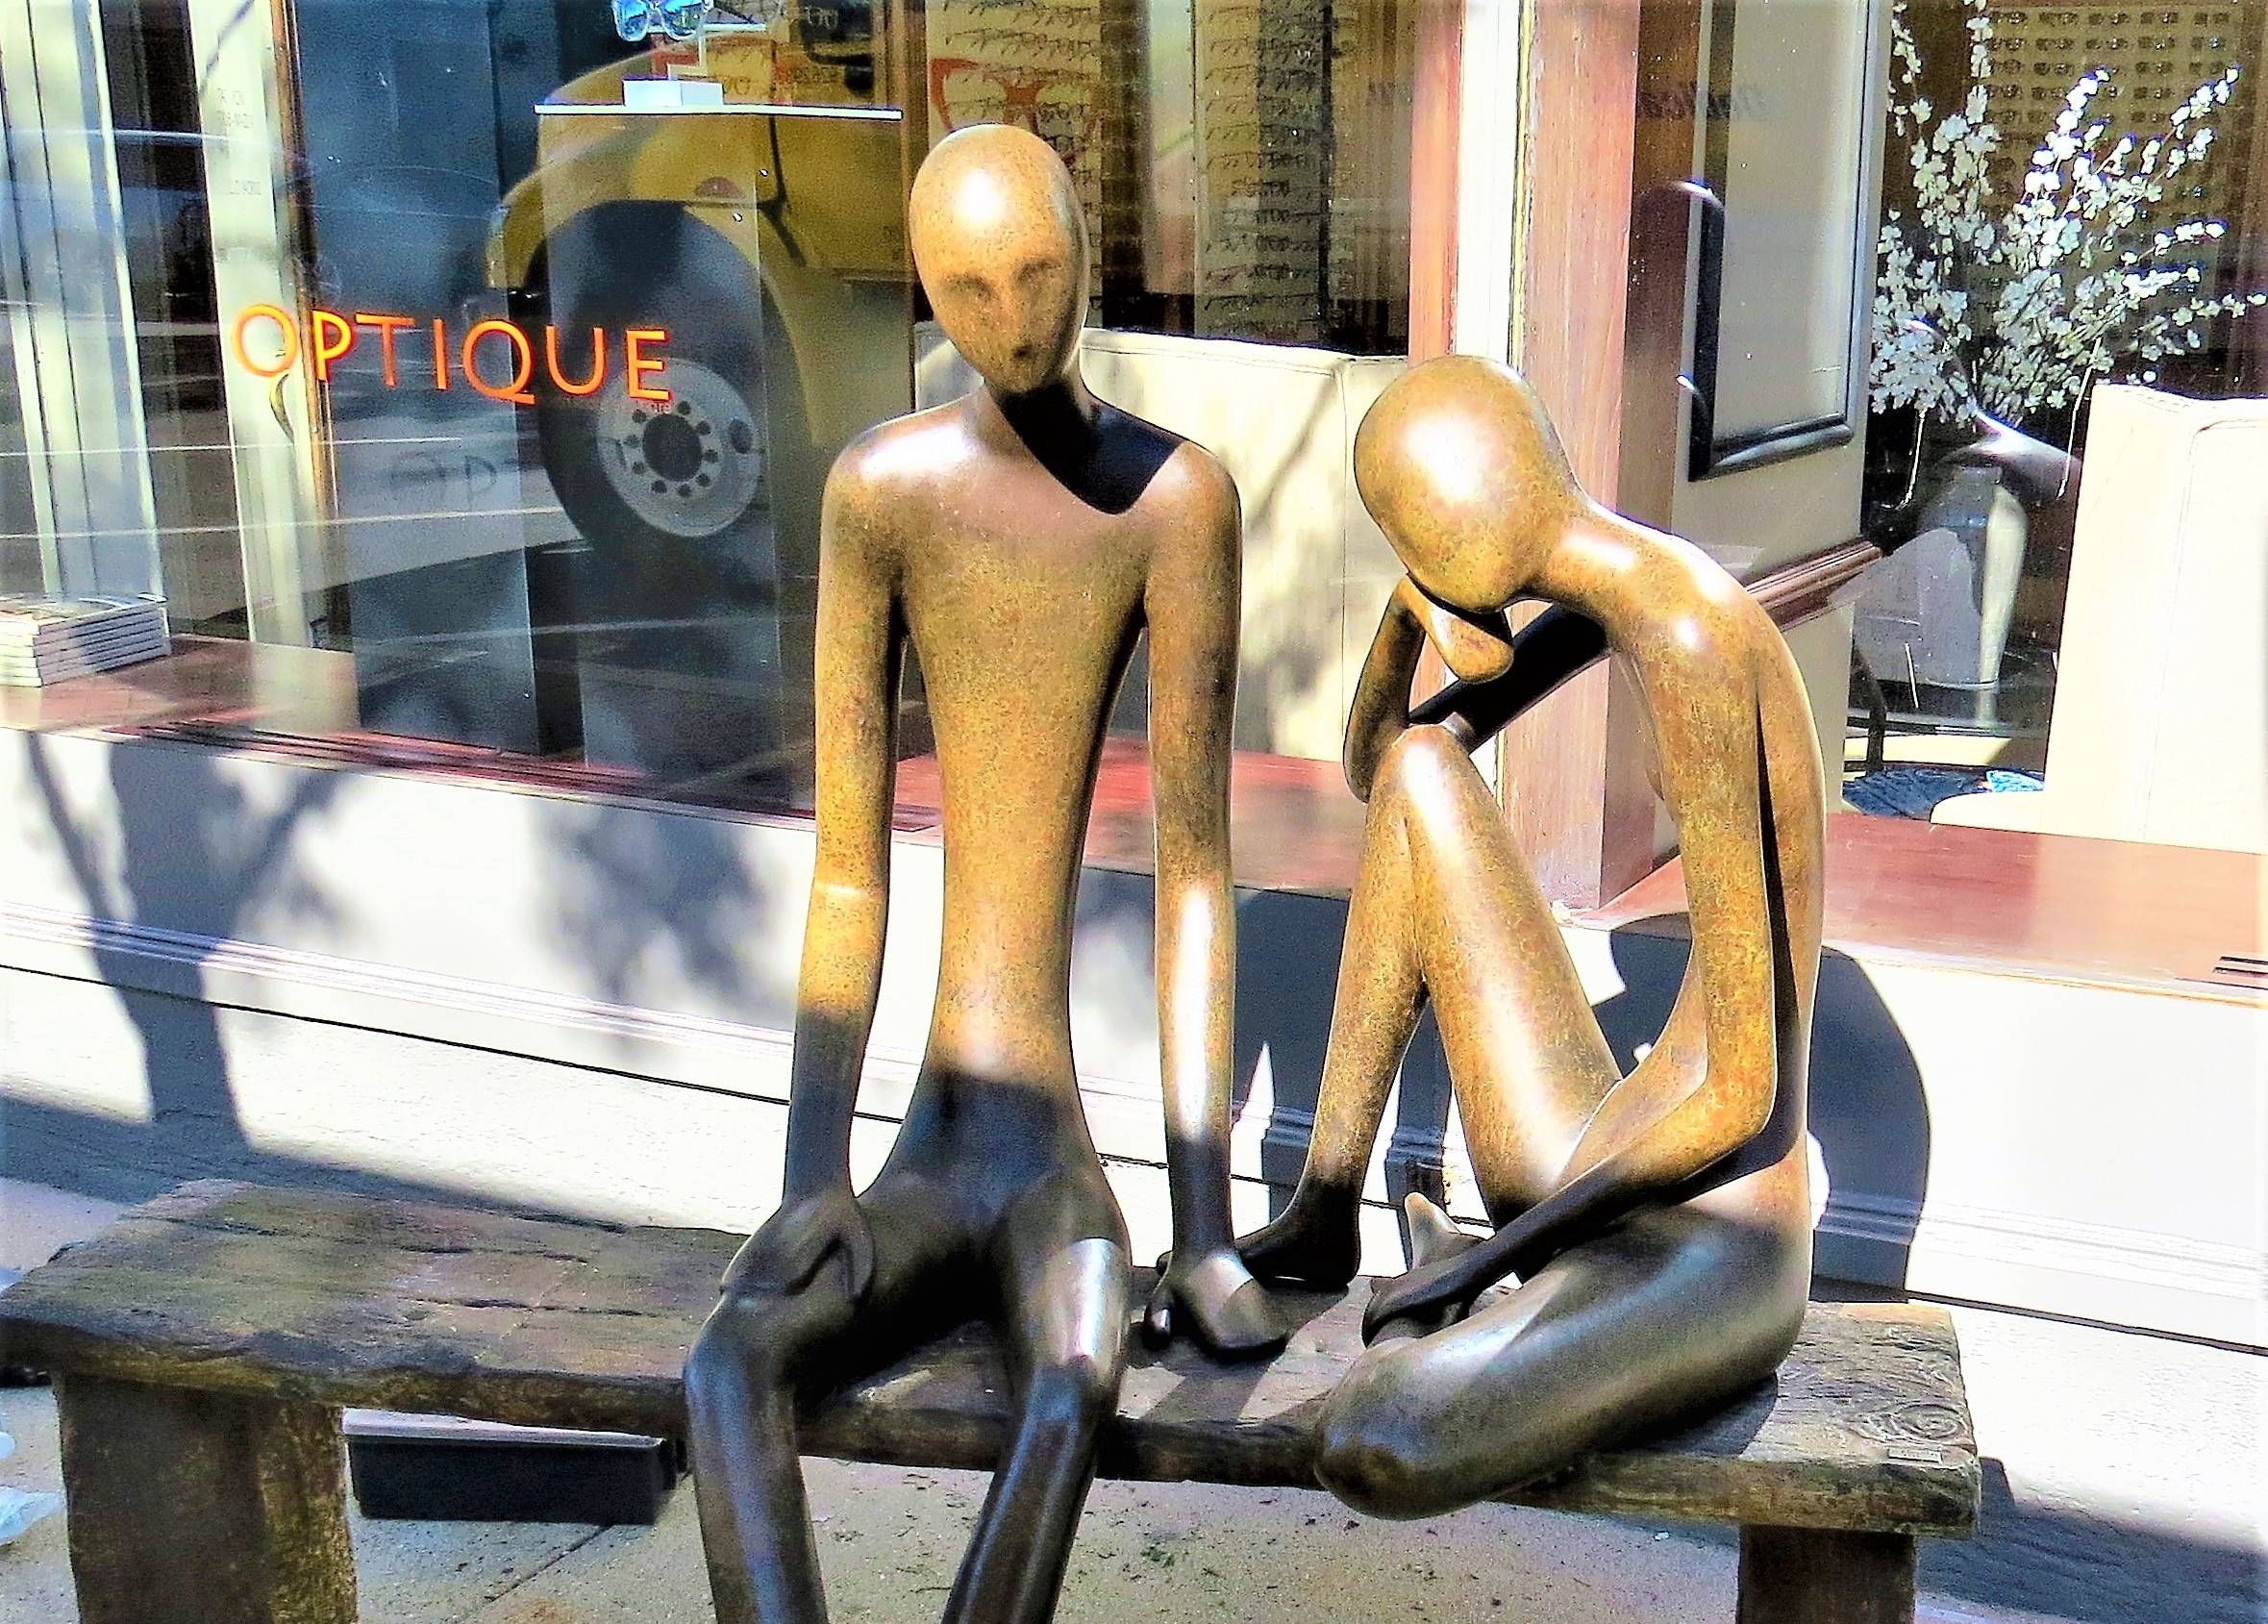 """In Dialogue"" by Ruth Bloch is one of the artworks in a new public sculpture walk in Winnetka, sponsored by Hoffmann Commercial Real Estate.Creative Marketing Associates, Inc."